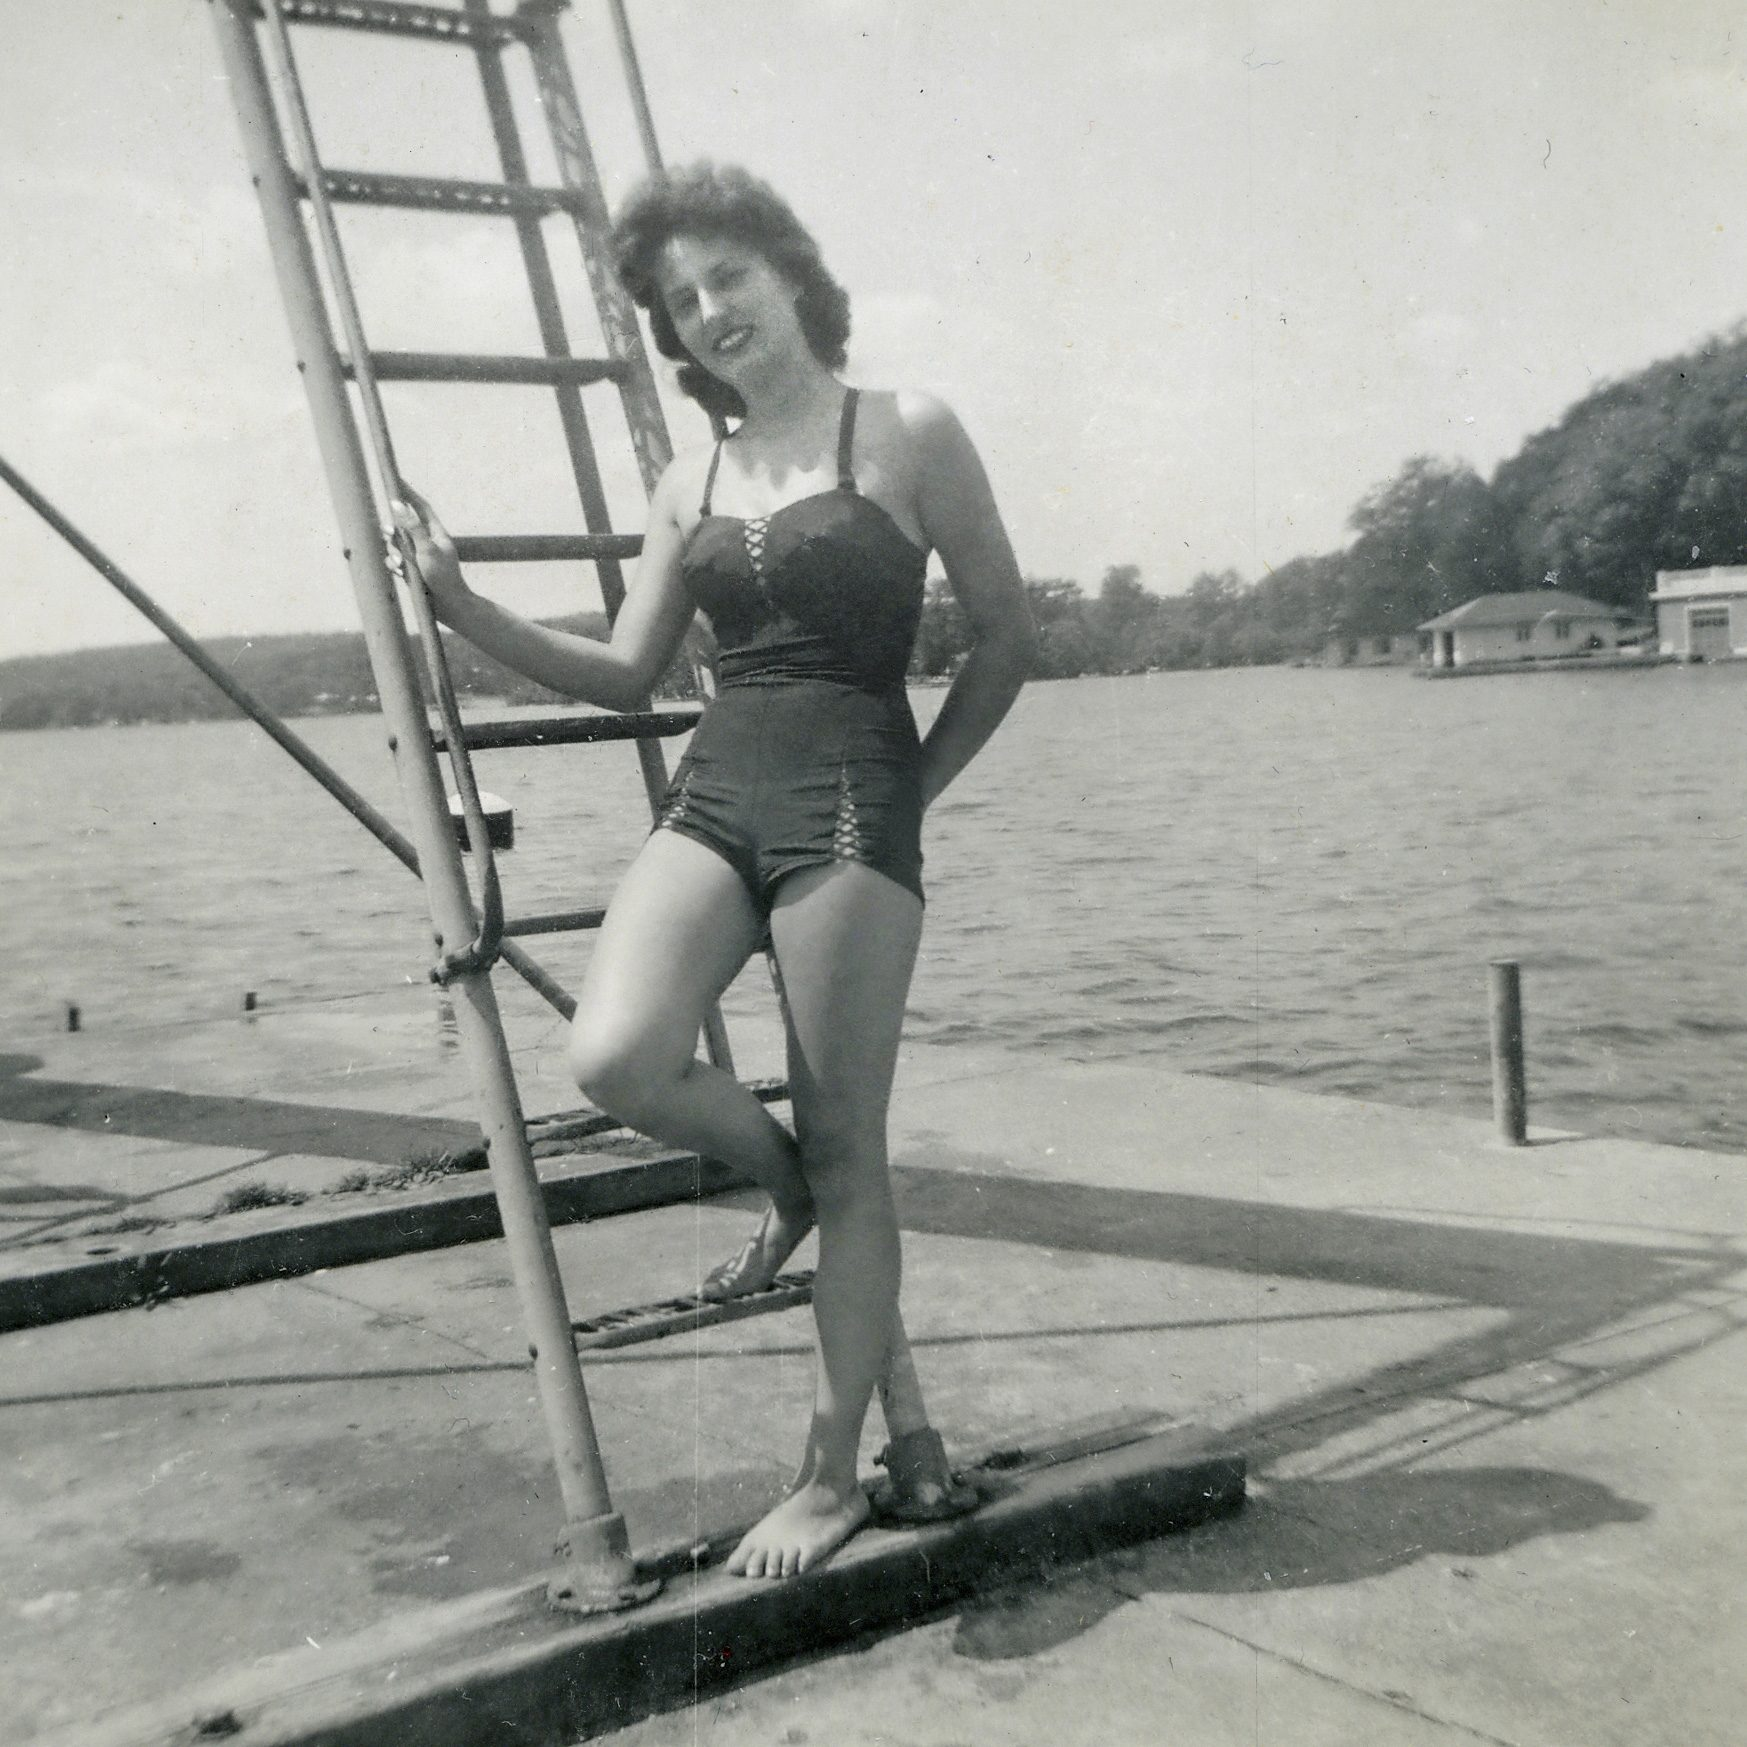 vintage swimsuit photo